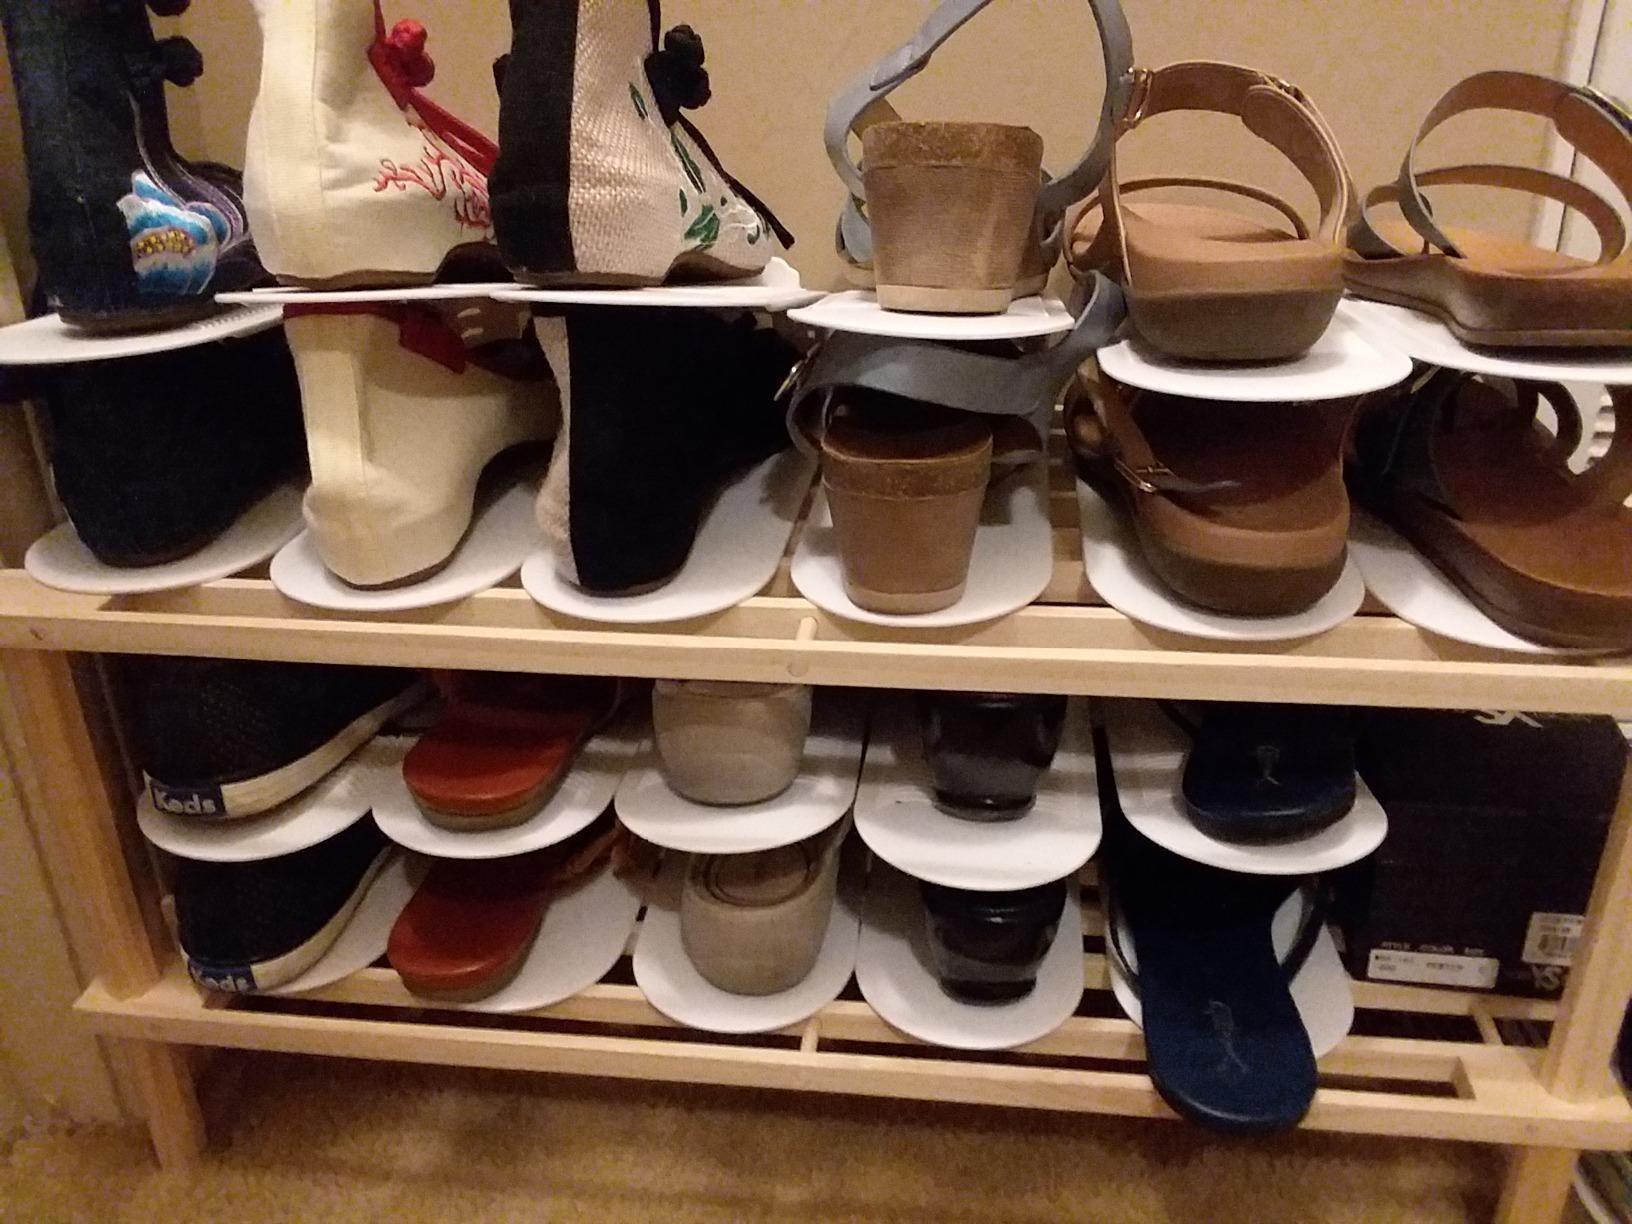 A reviewer photo showing 11 pairs of shoes fitting on a six-pair shoe rack, because the doublers allow each pair to stack on top of each other